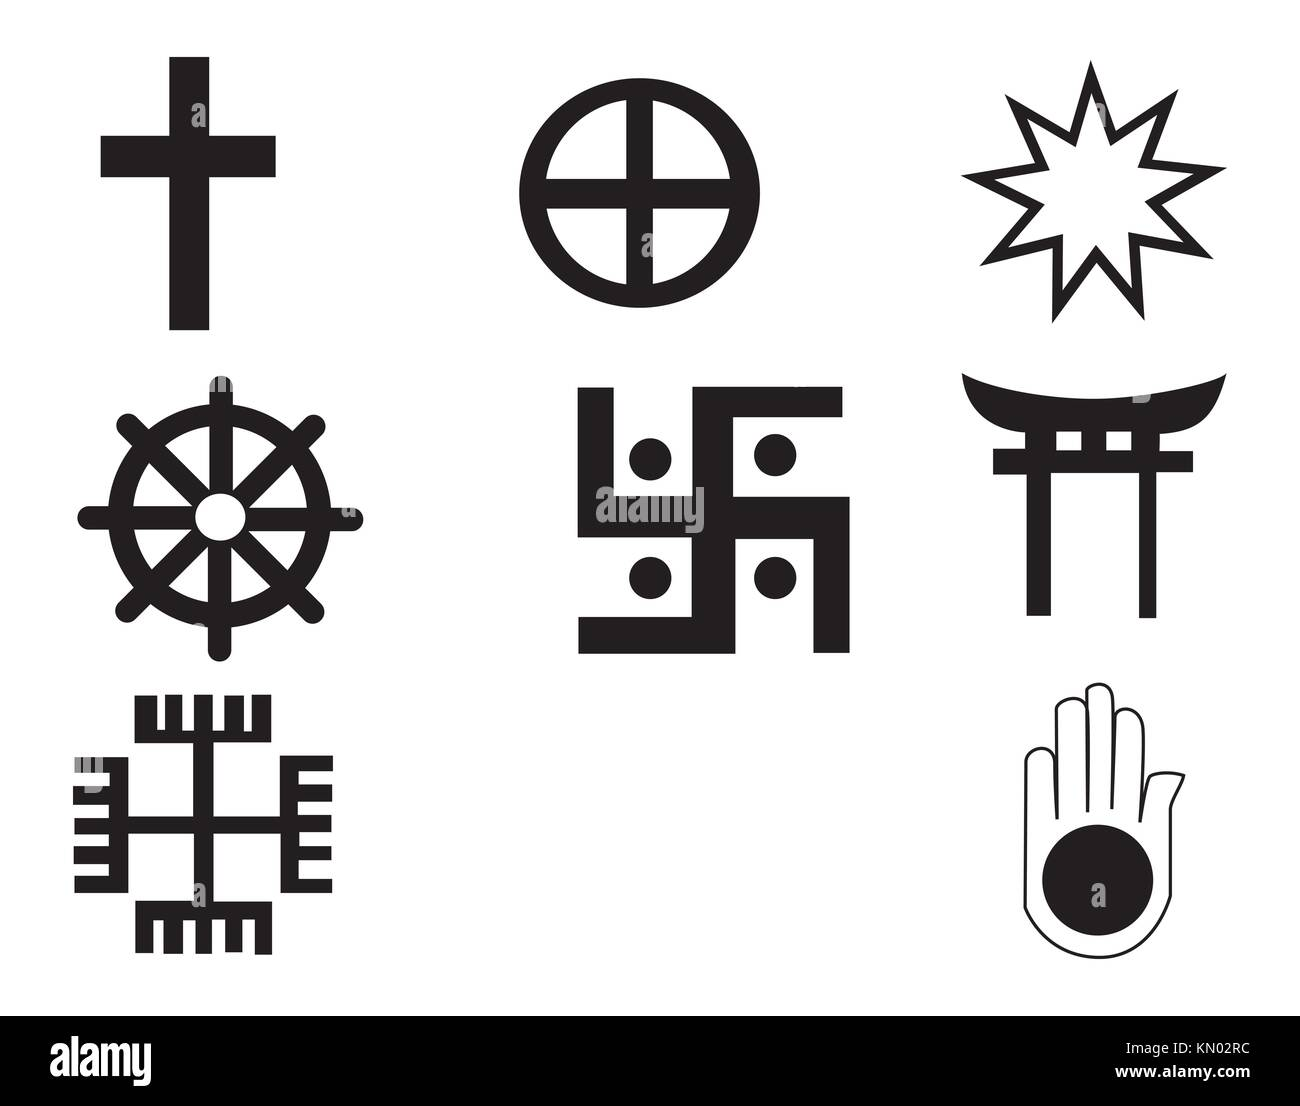 Religion symbols cut out stock images pictures alamy different religions symbols stock image biocorpaavc